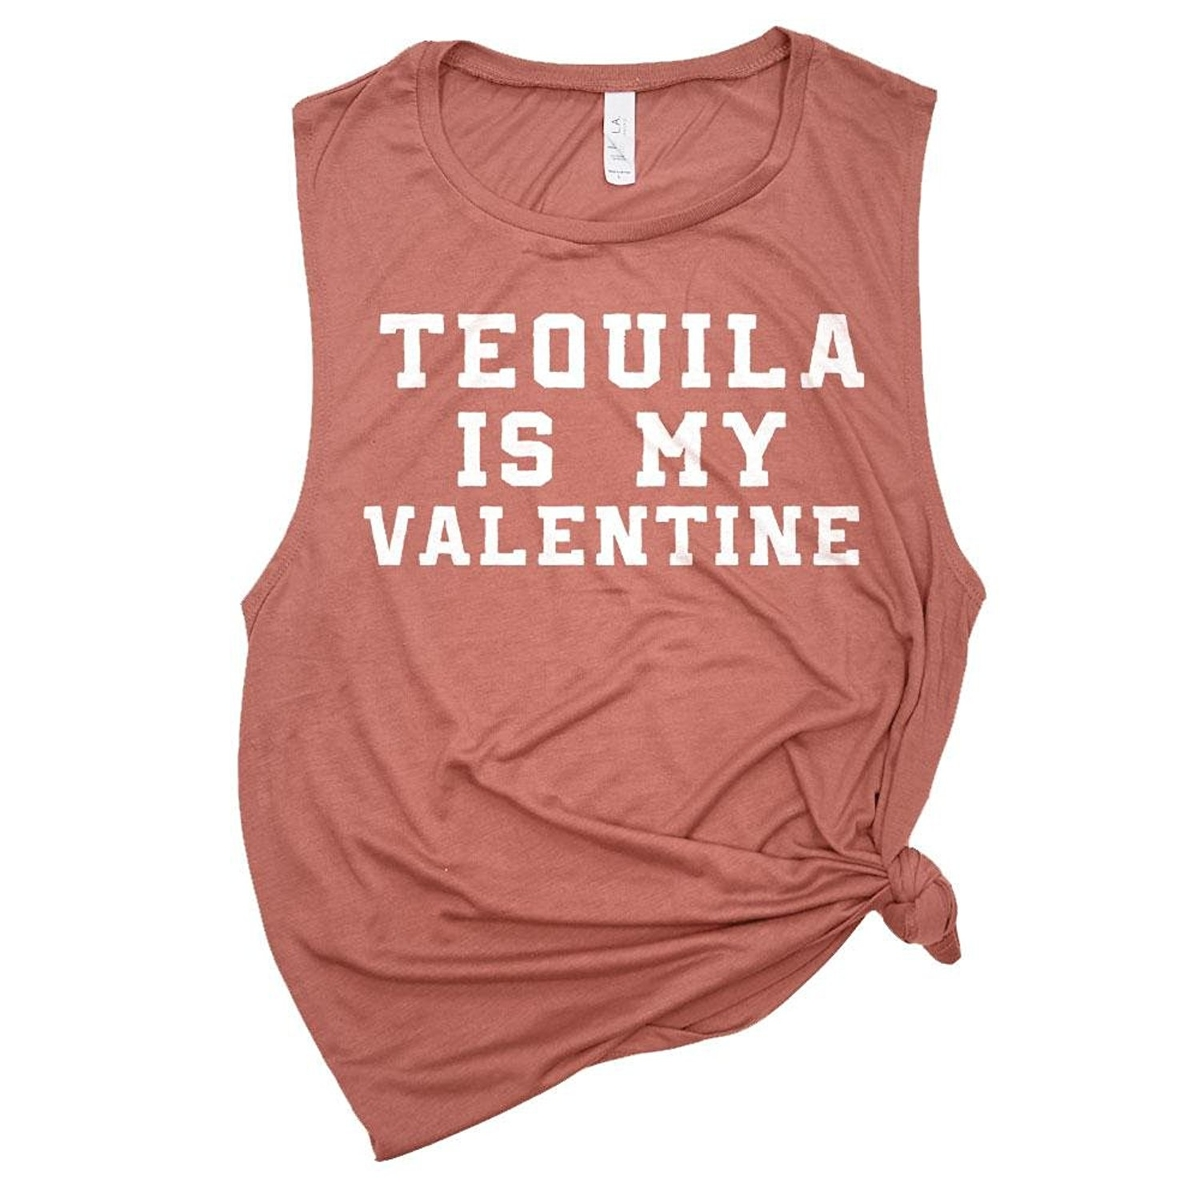 spunky pineapple tequila is my valentine shirt this cute and comfy shirt is sure to start some interesting conversations tequila forever or until